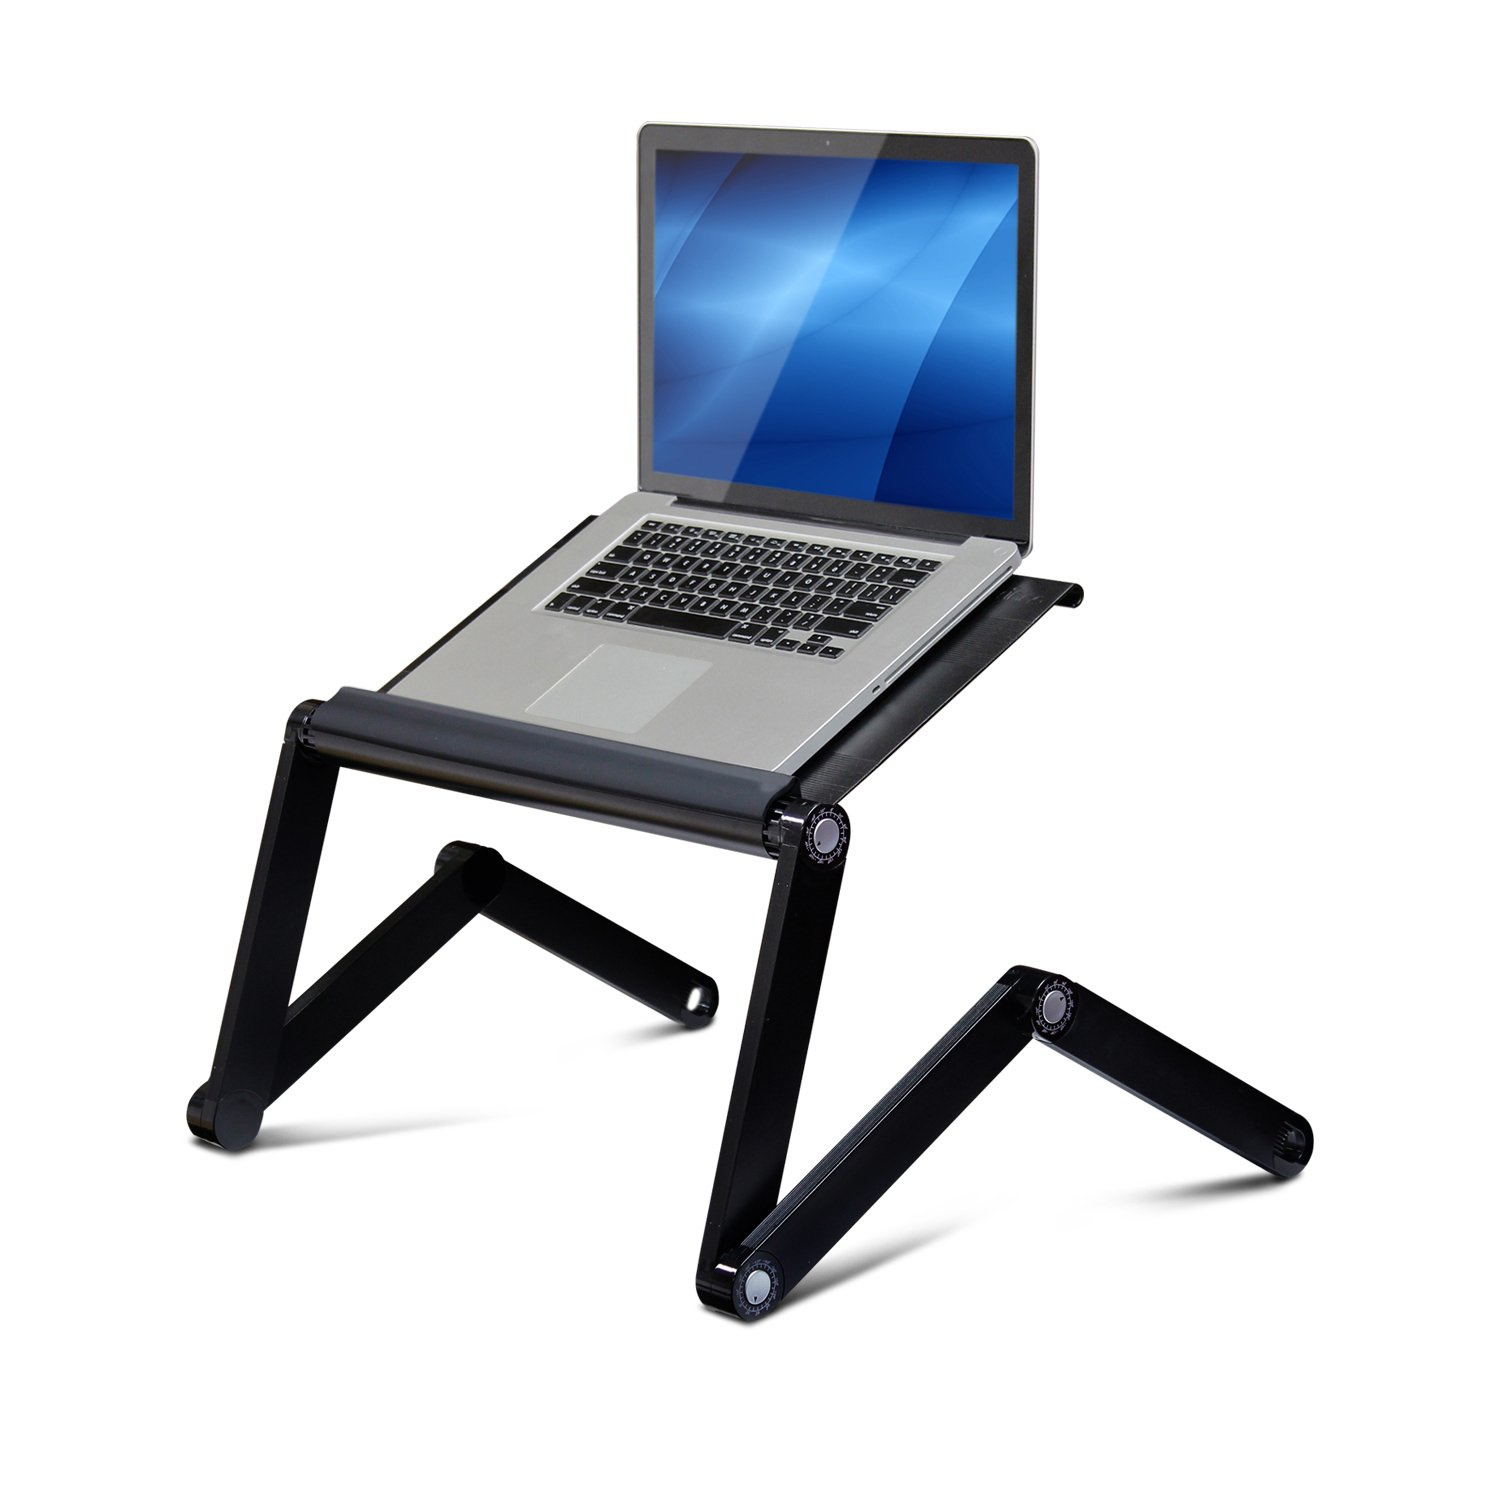 Furinno A6 Black Ergonomics Aluminum Vented Adjustable Laptop Portable Bed  Tray, Black: Amazon.co.uk: Kitchen U0026 Home